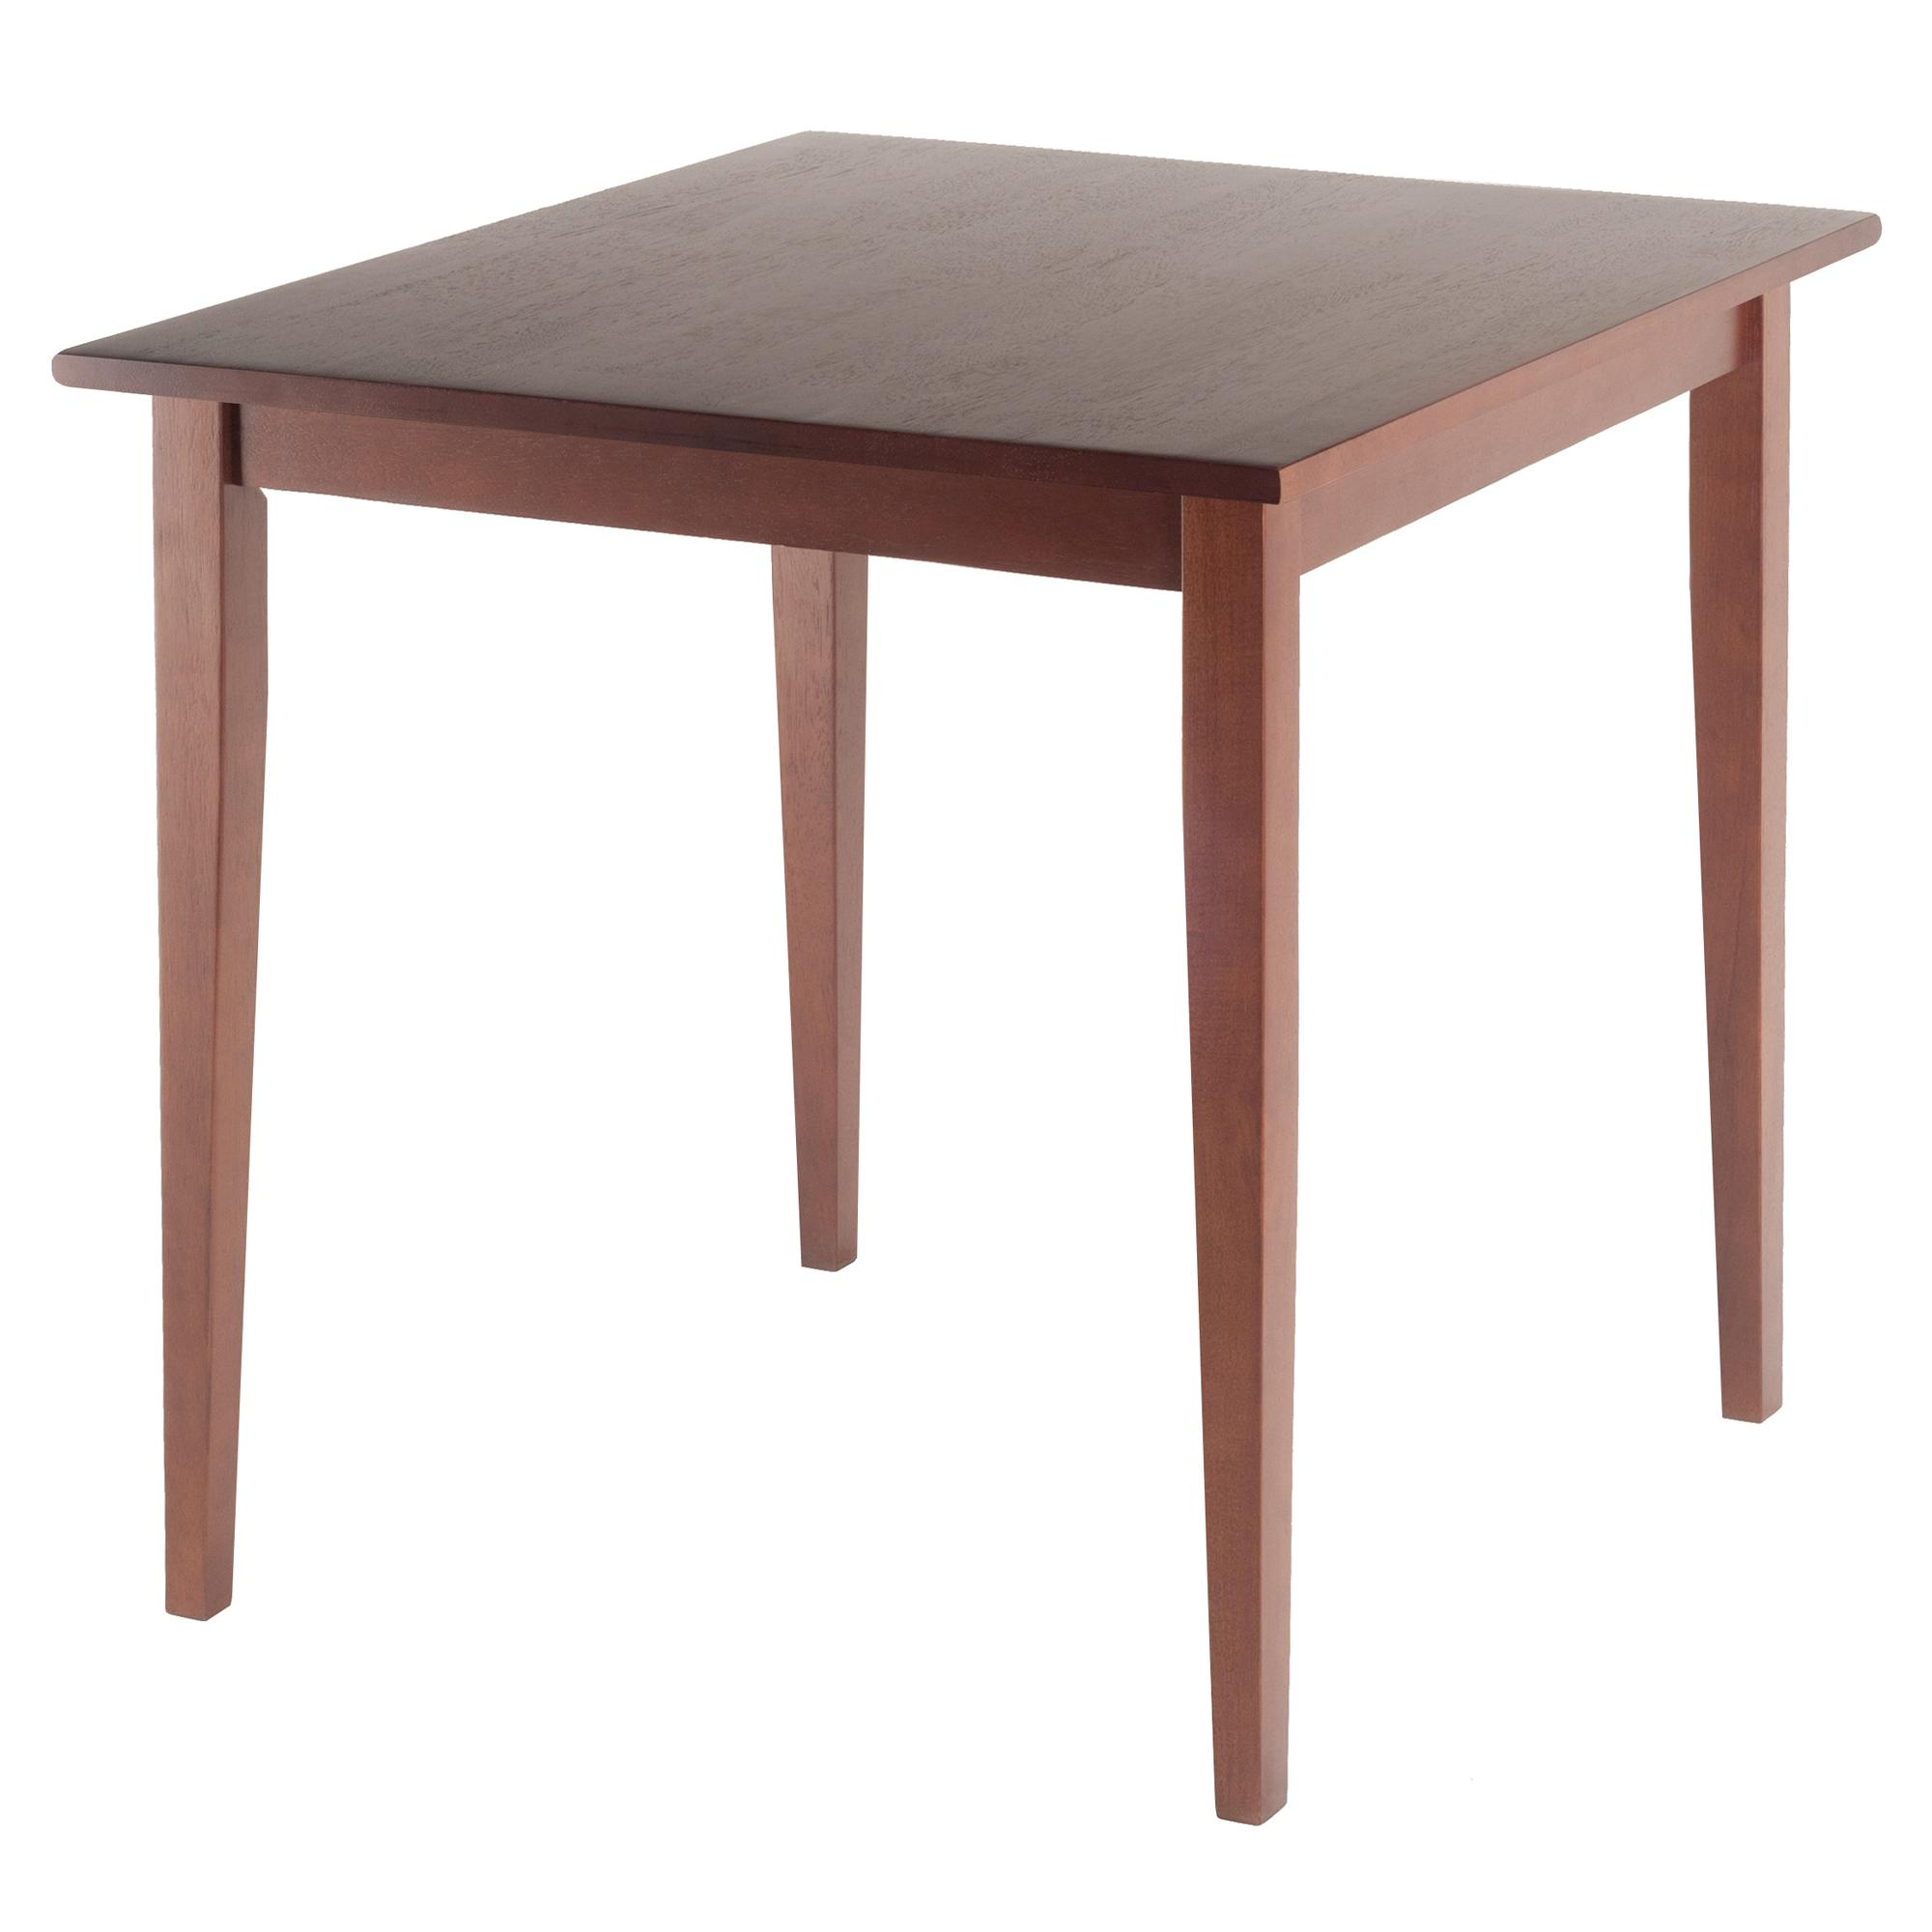 Amazon.com - Winsome Wood Groveland Square Dining Table in Antique ...